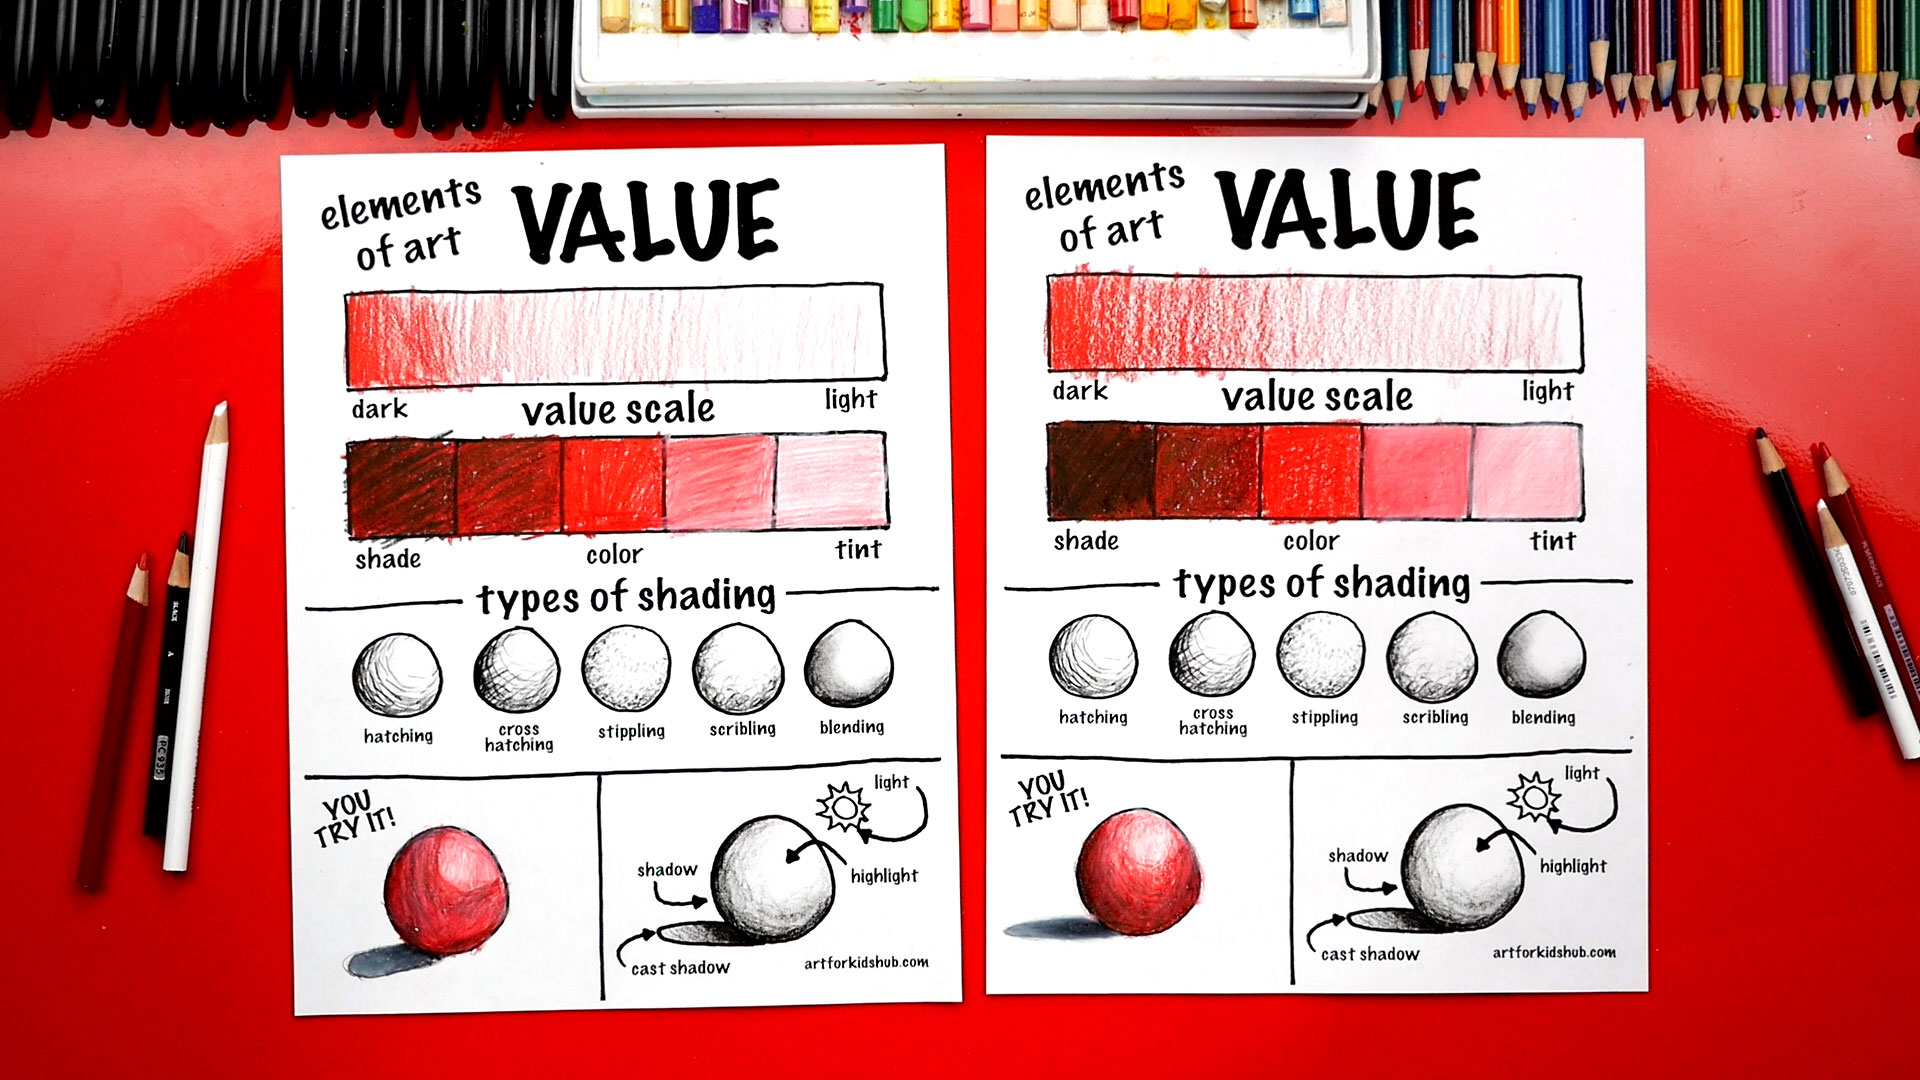 Value Basics